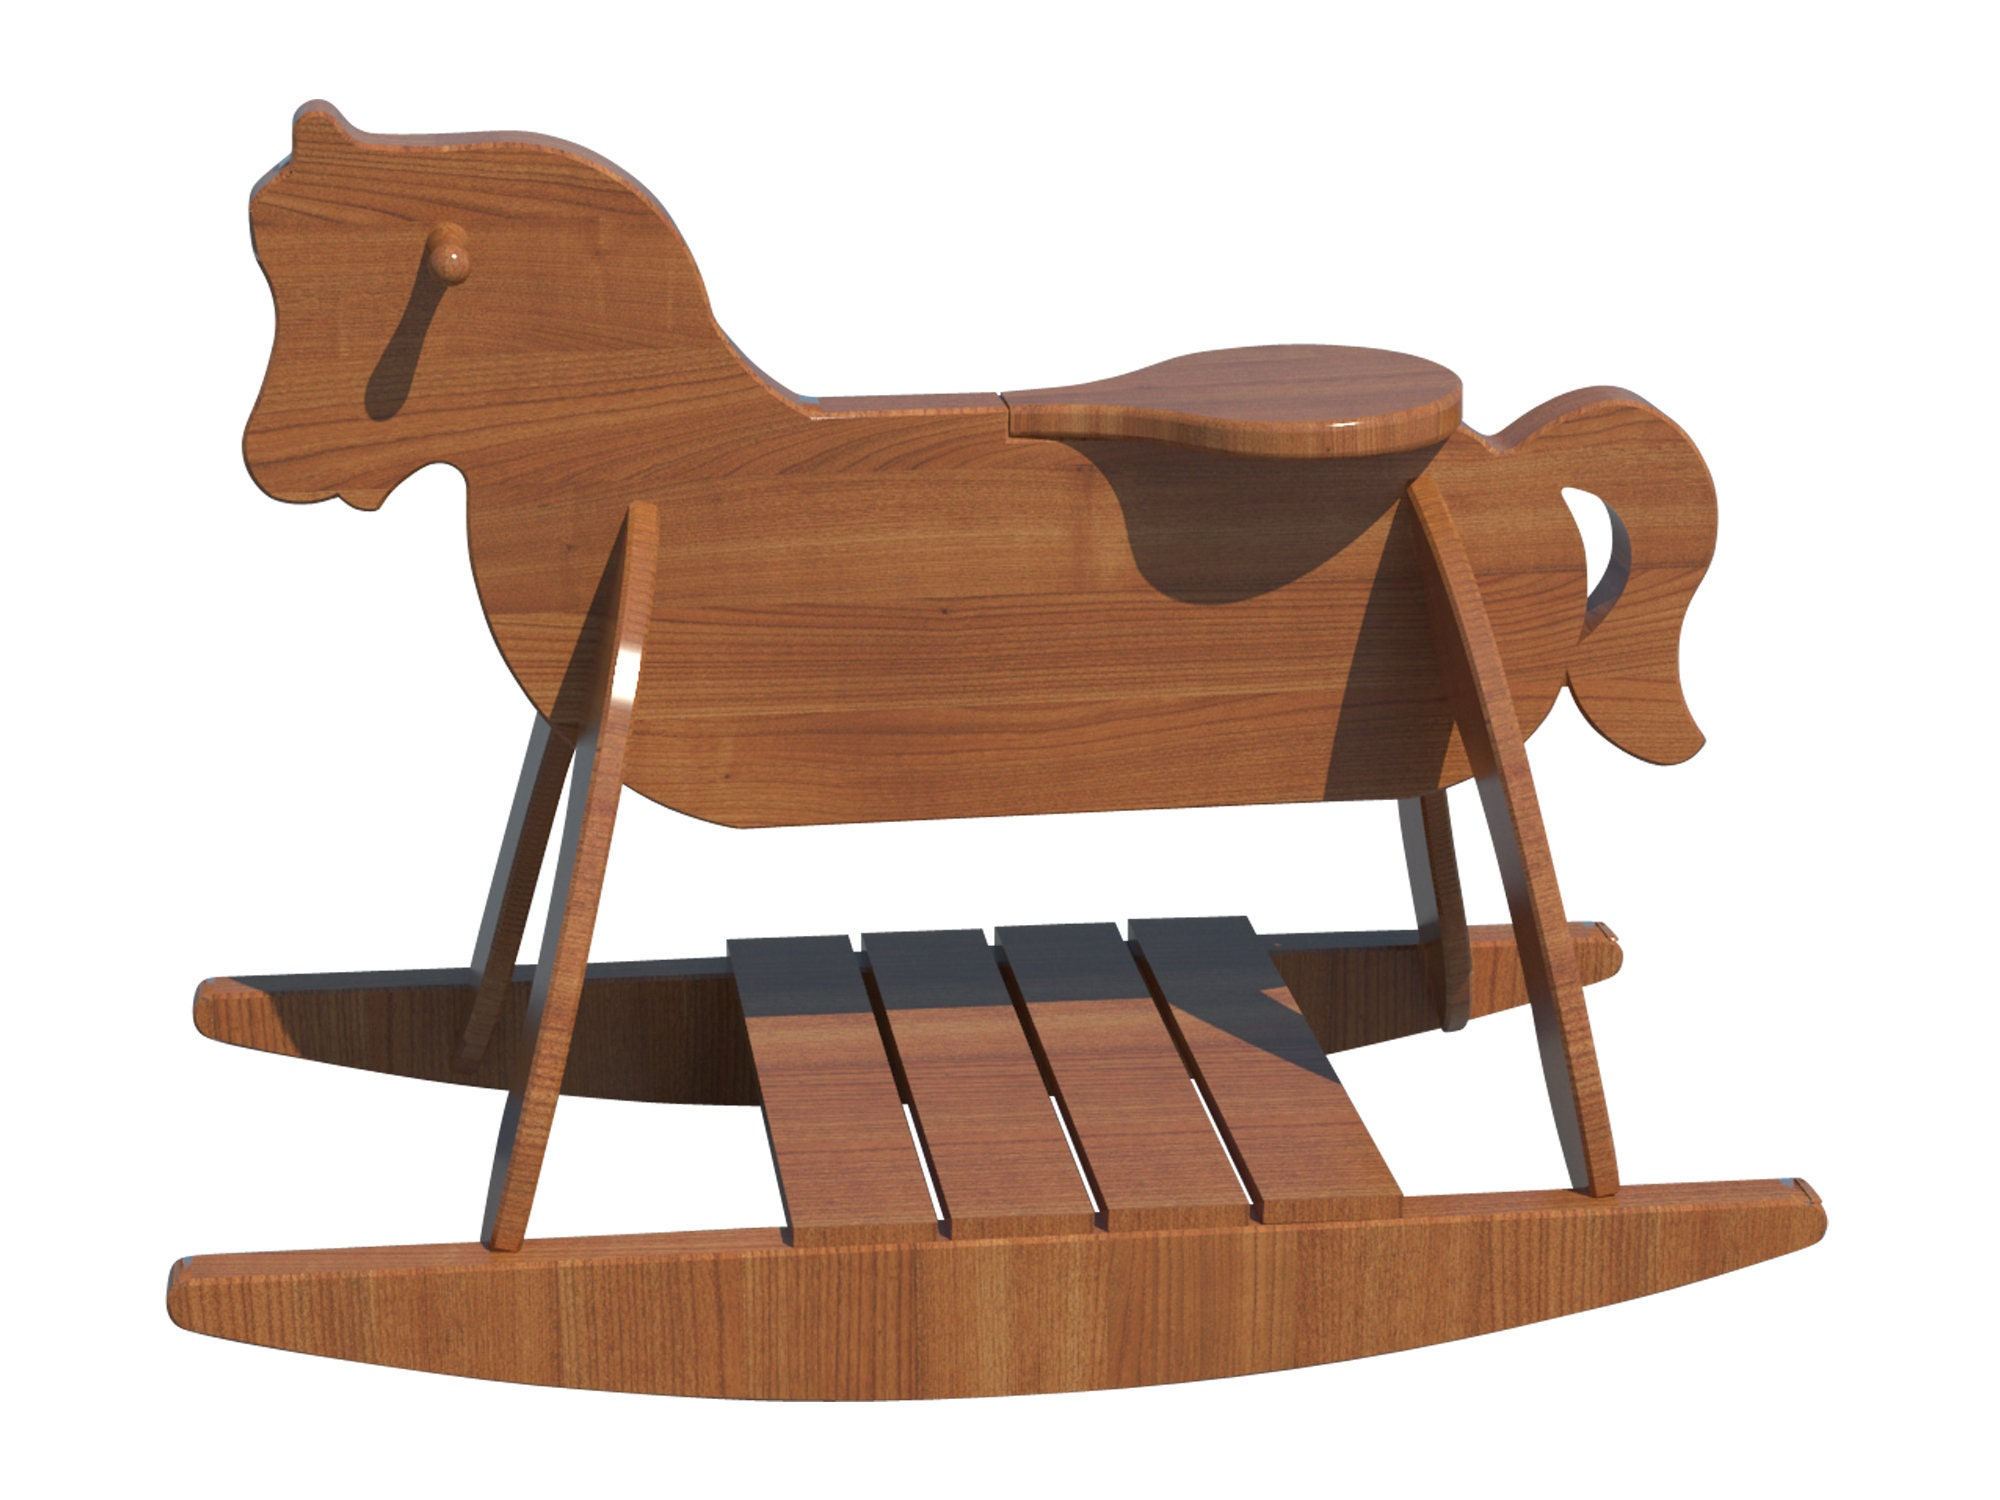 Wooden Rocking Horse Plans Diy Playroom Baby Rocker